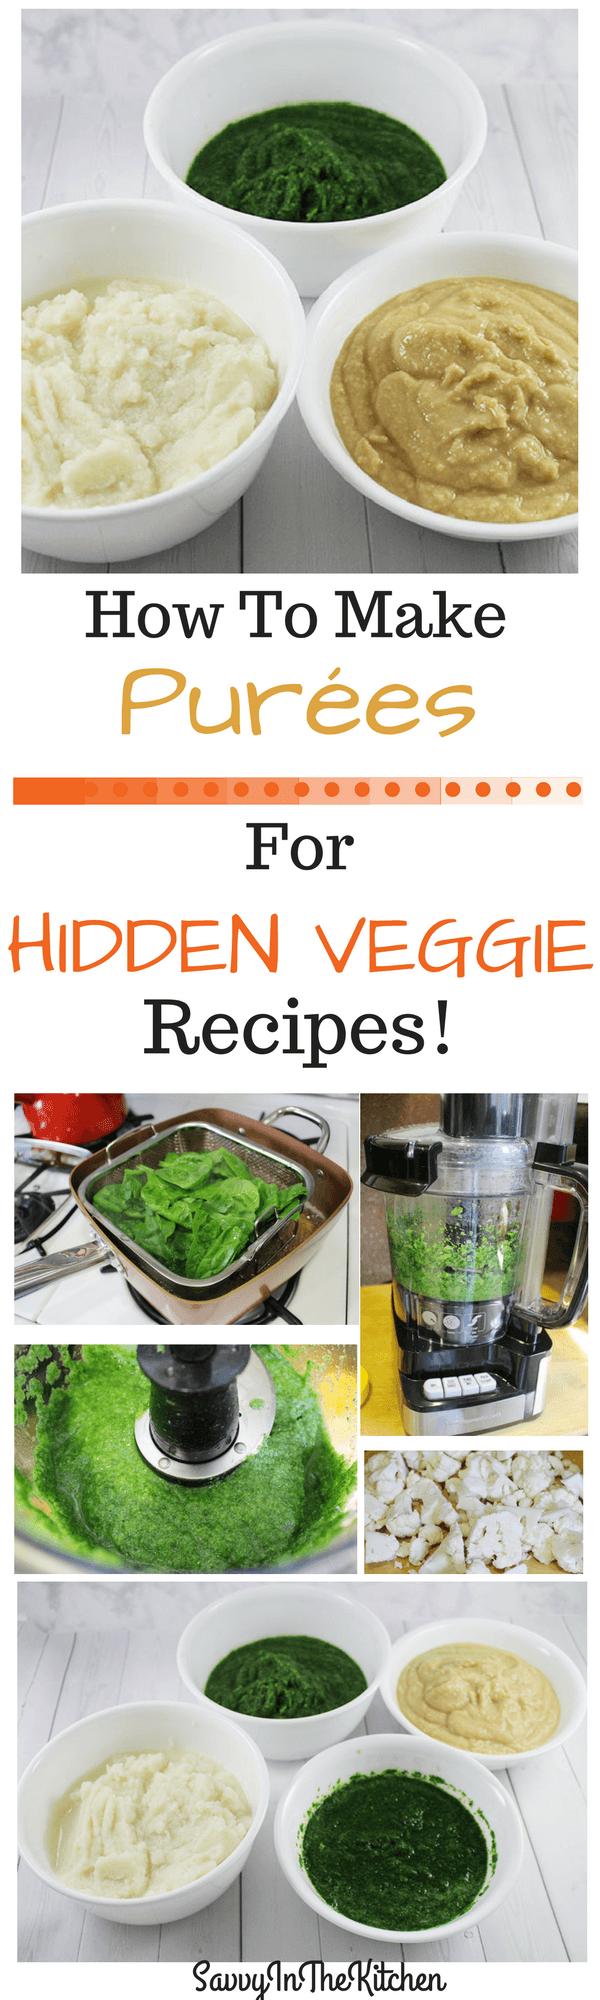 How to make pures for hidden veggie recipes savvy in the kitchen how to make purees for hidden veggie recipes forumfinder Choice Image